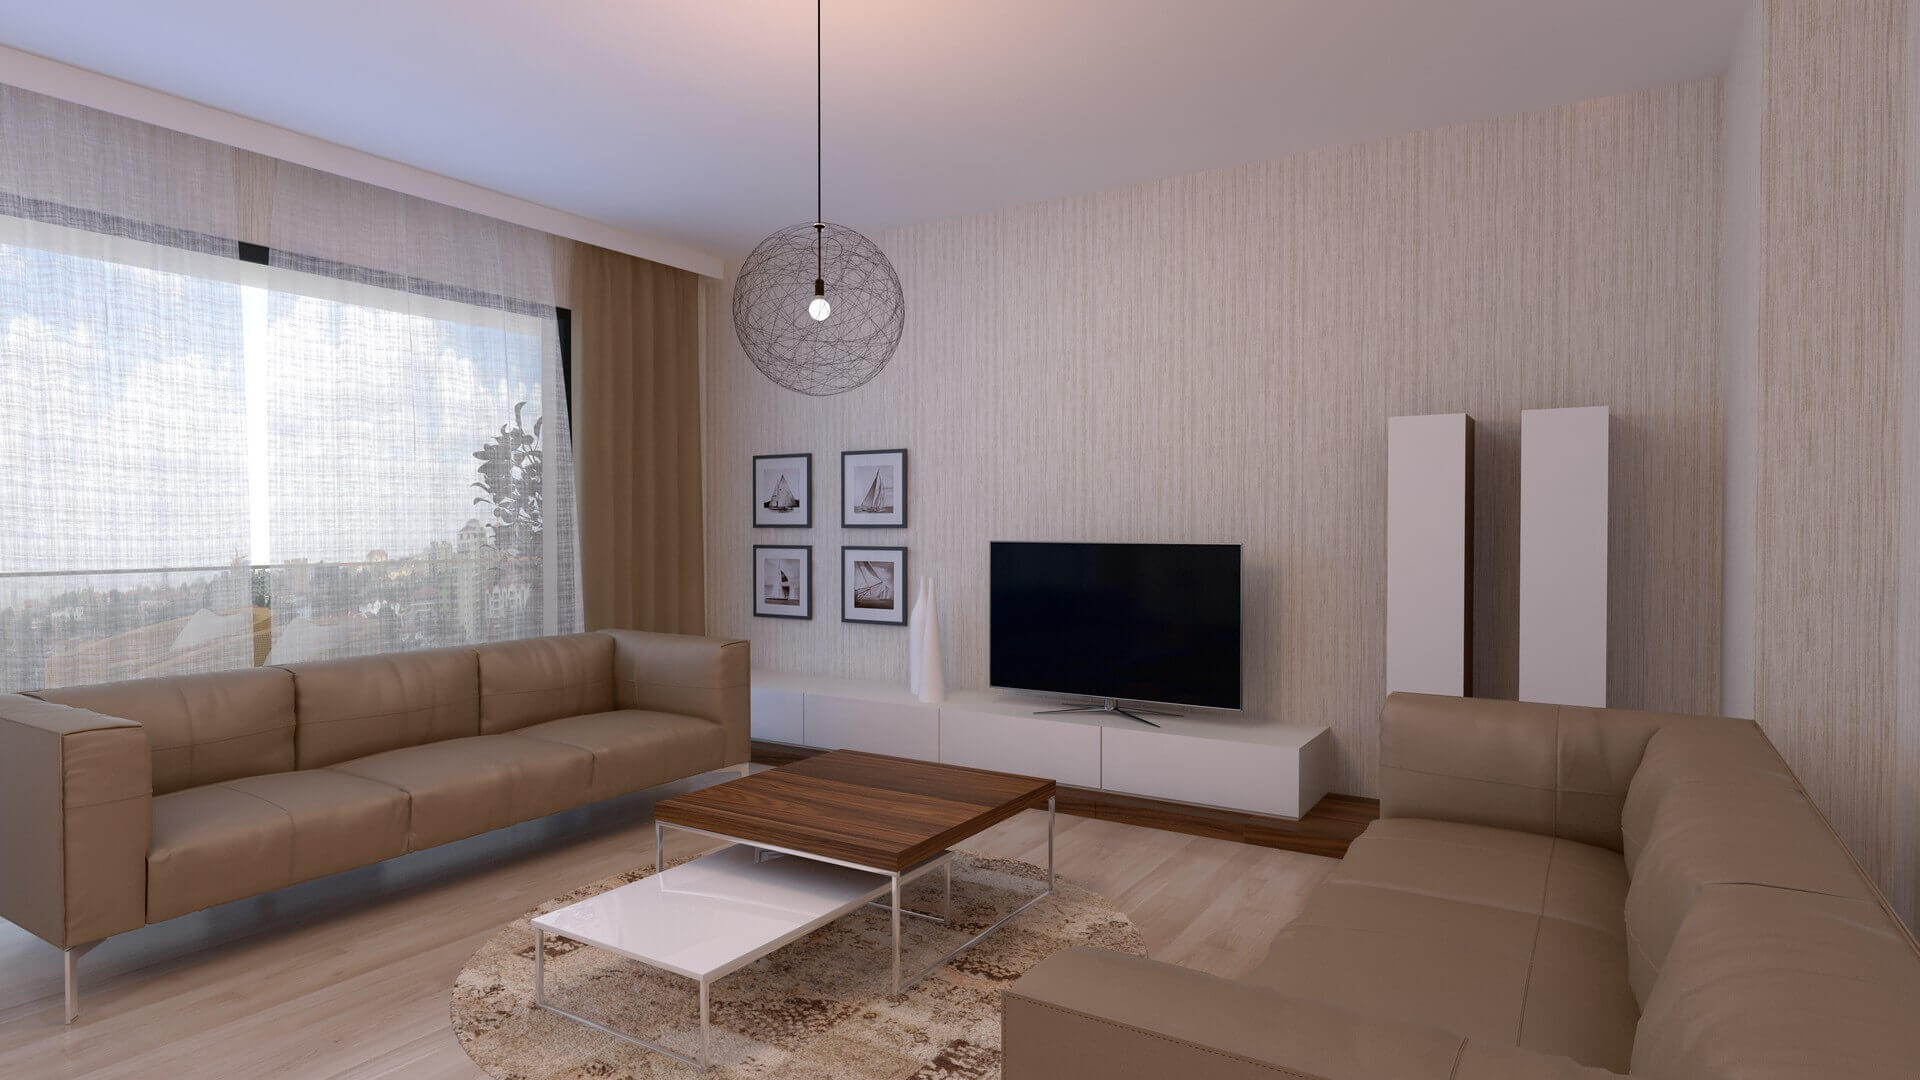 House interior decoration 3471 Signature Residence Residential